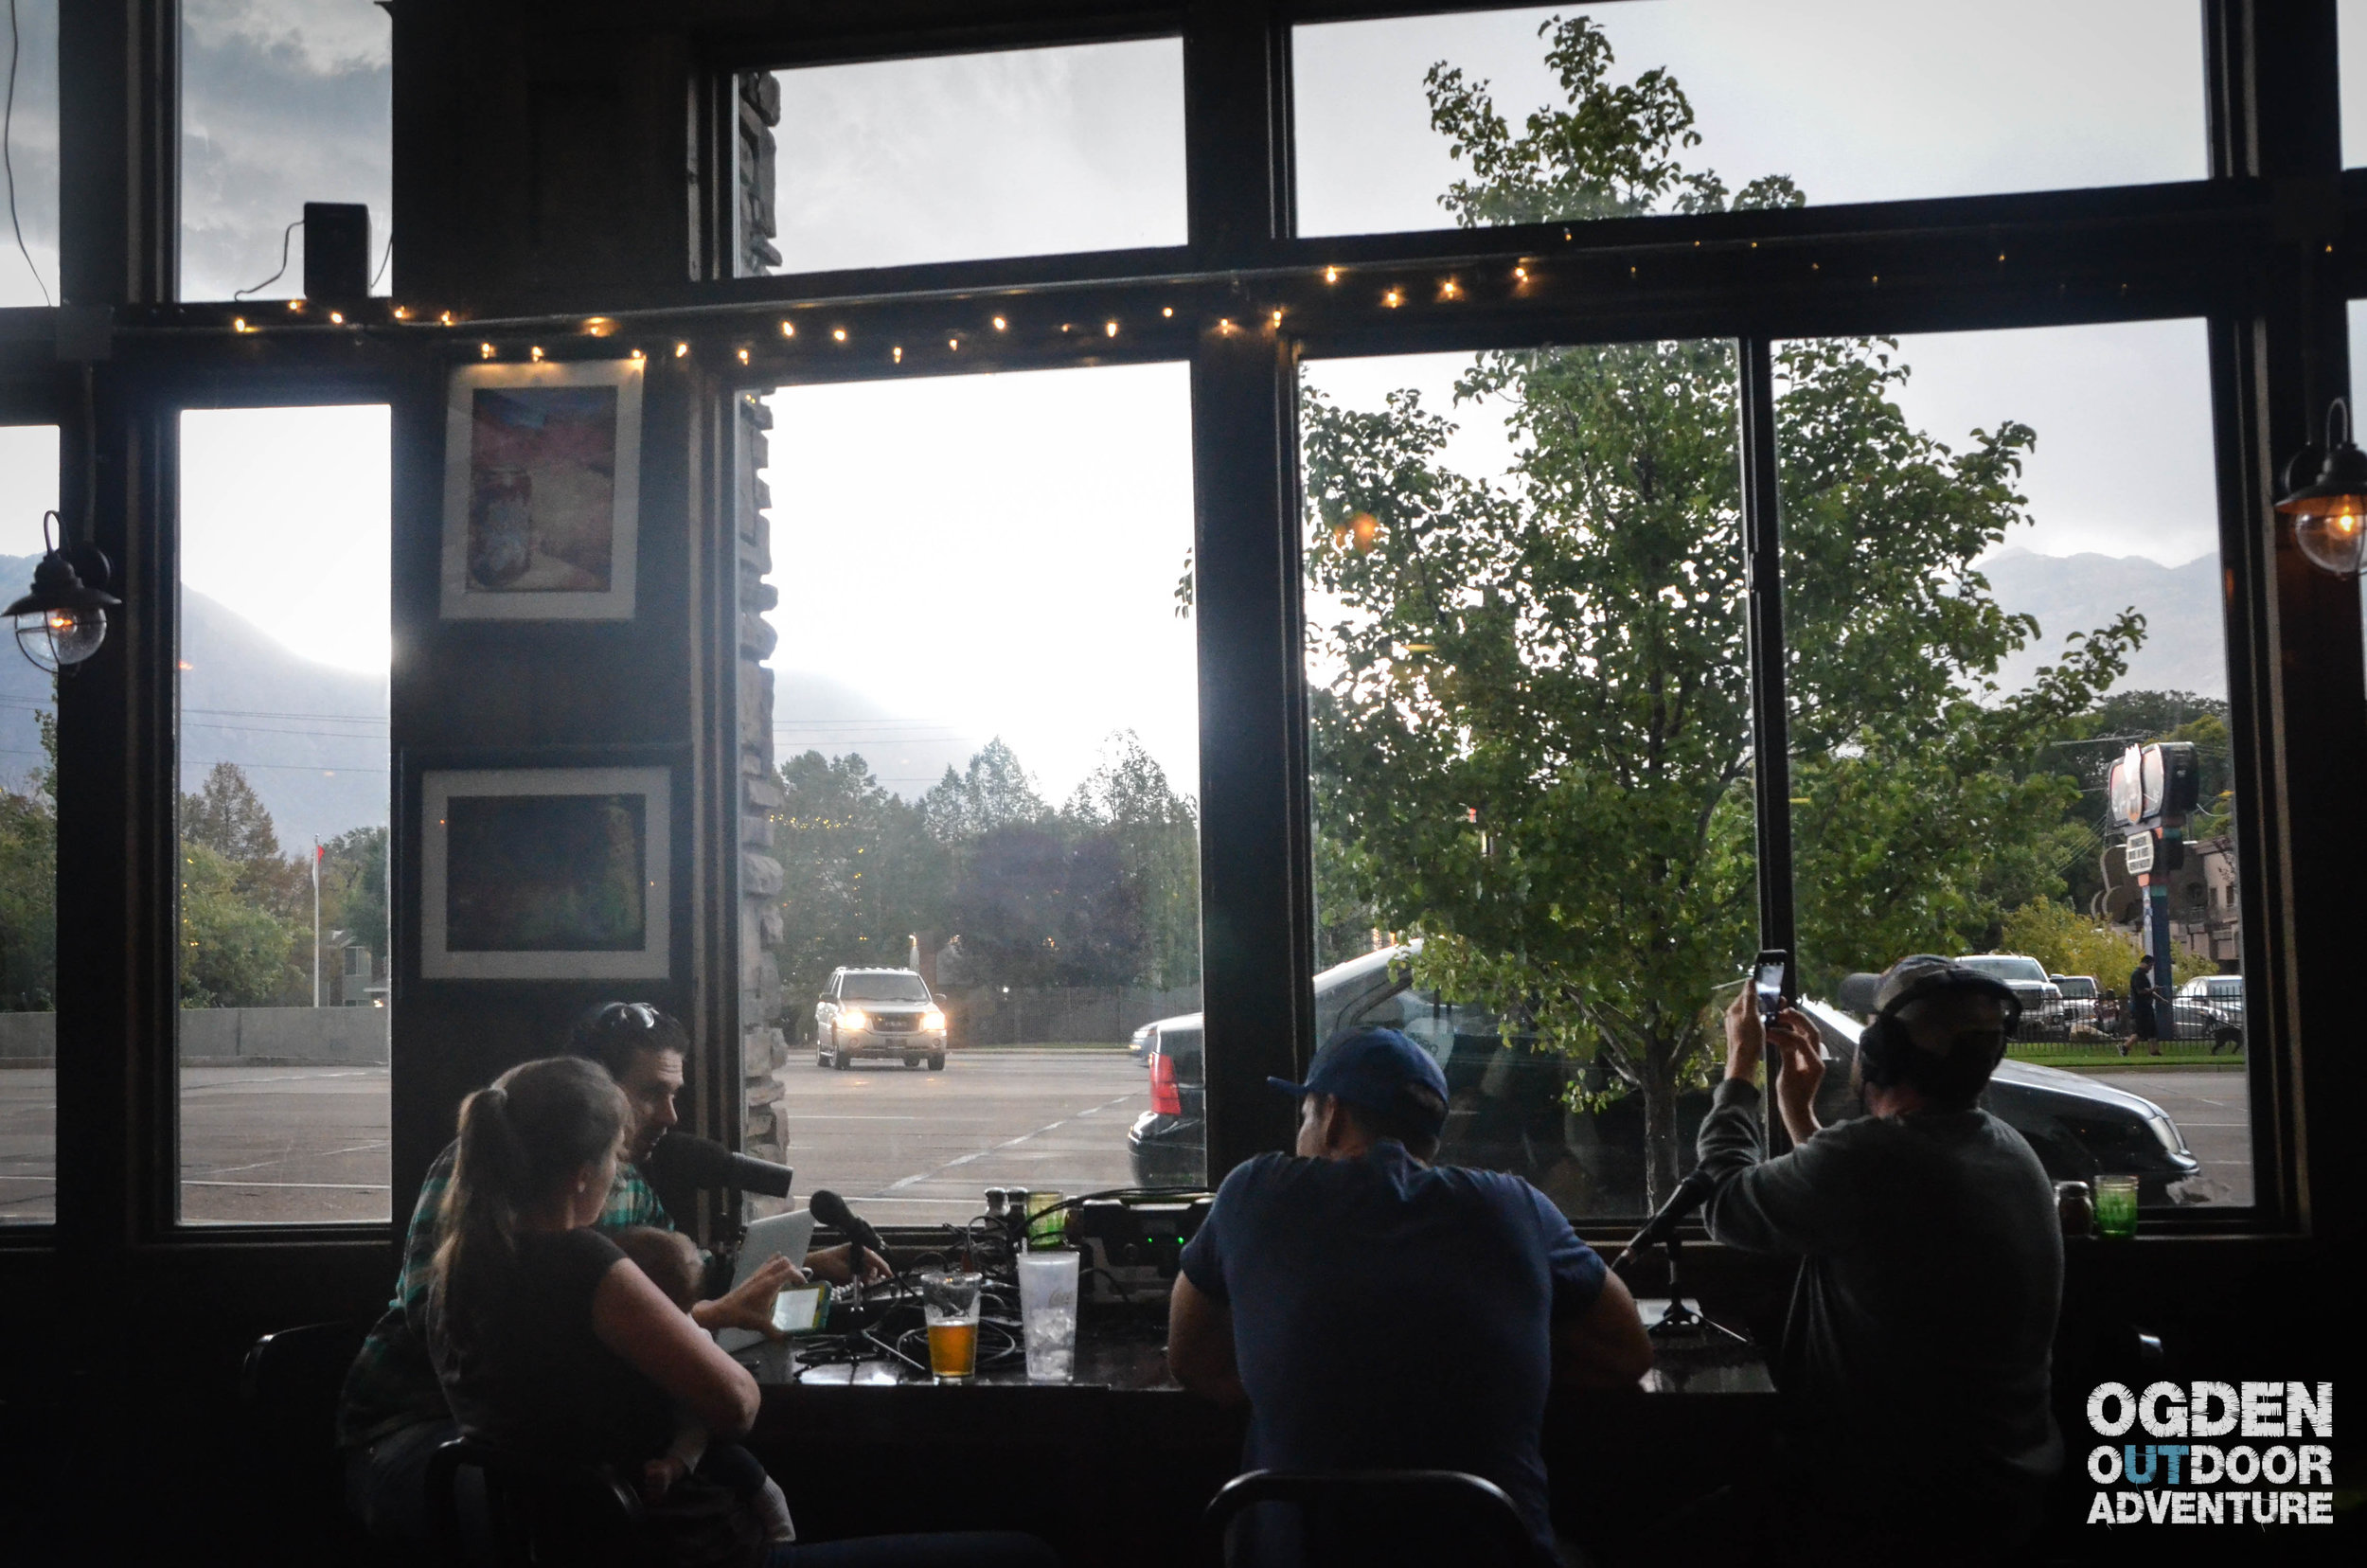 Podcasting at Slackwater Pizzeria while a storm rolls in.